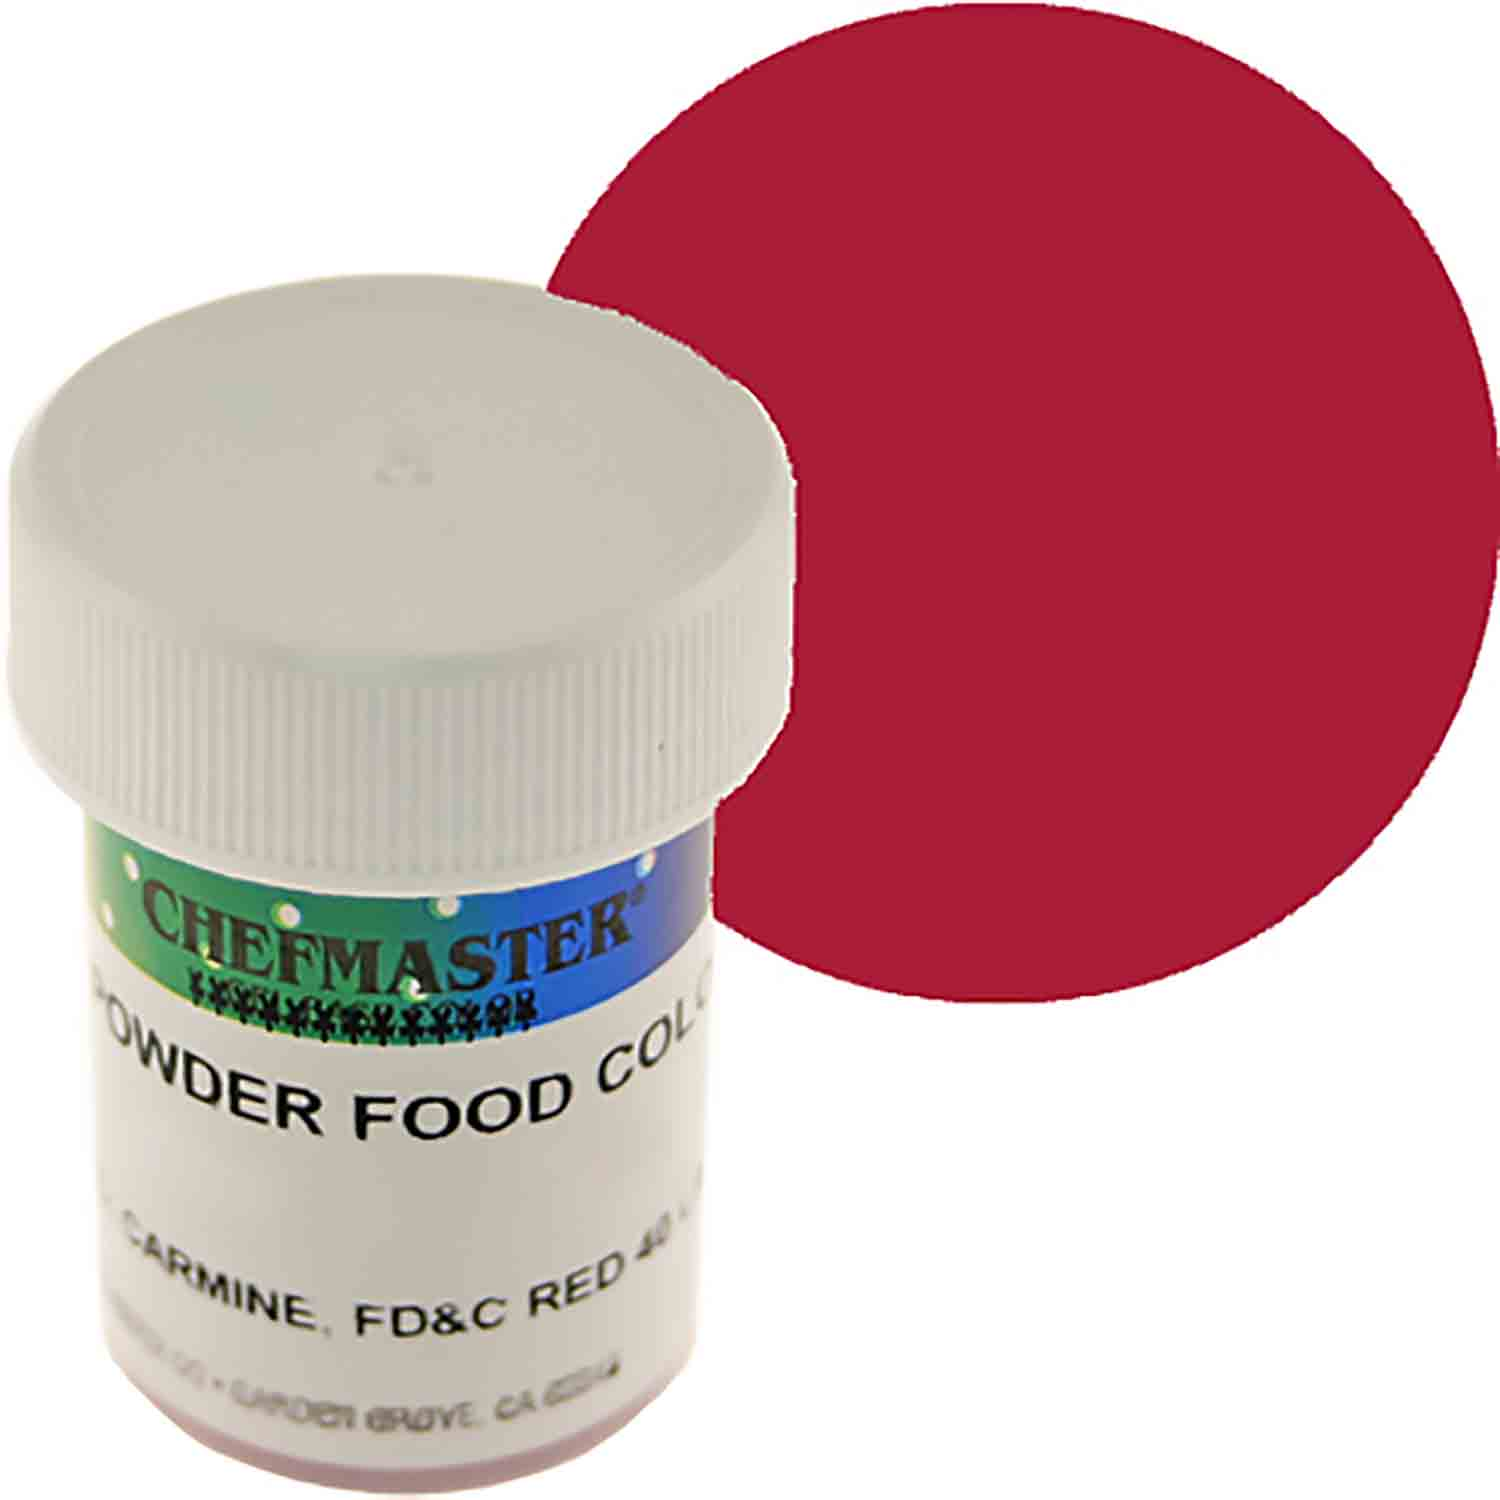 Red Chefmaster Powdered Food Color (Old Item # 41-4306)